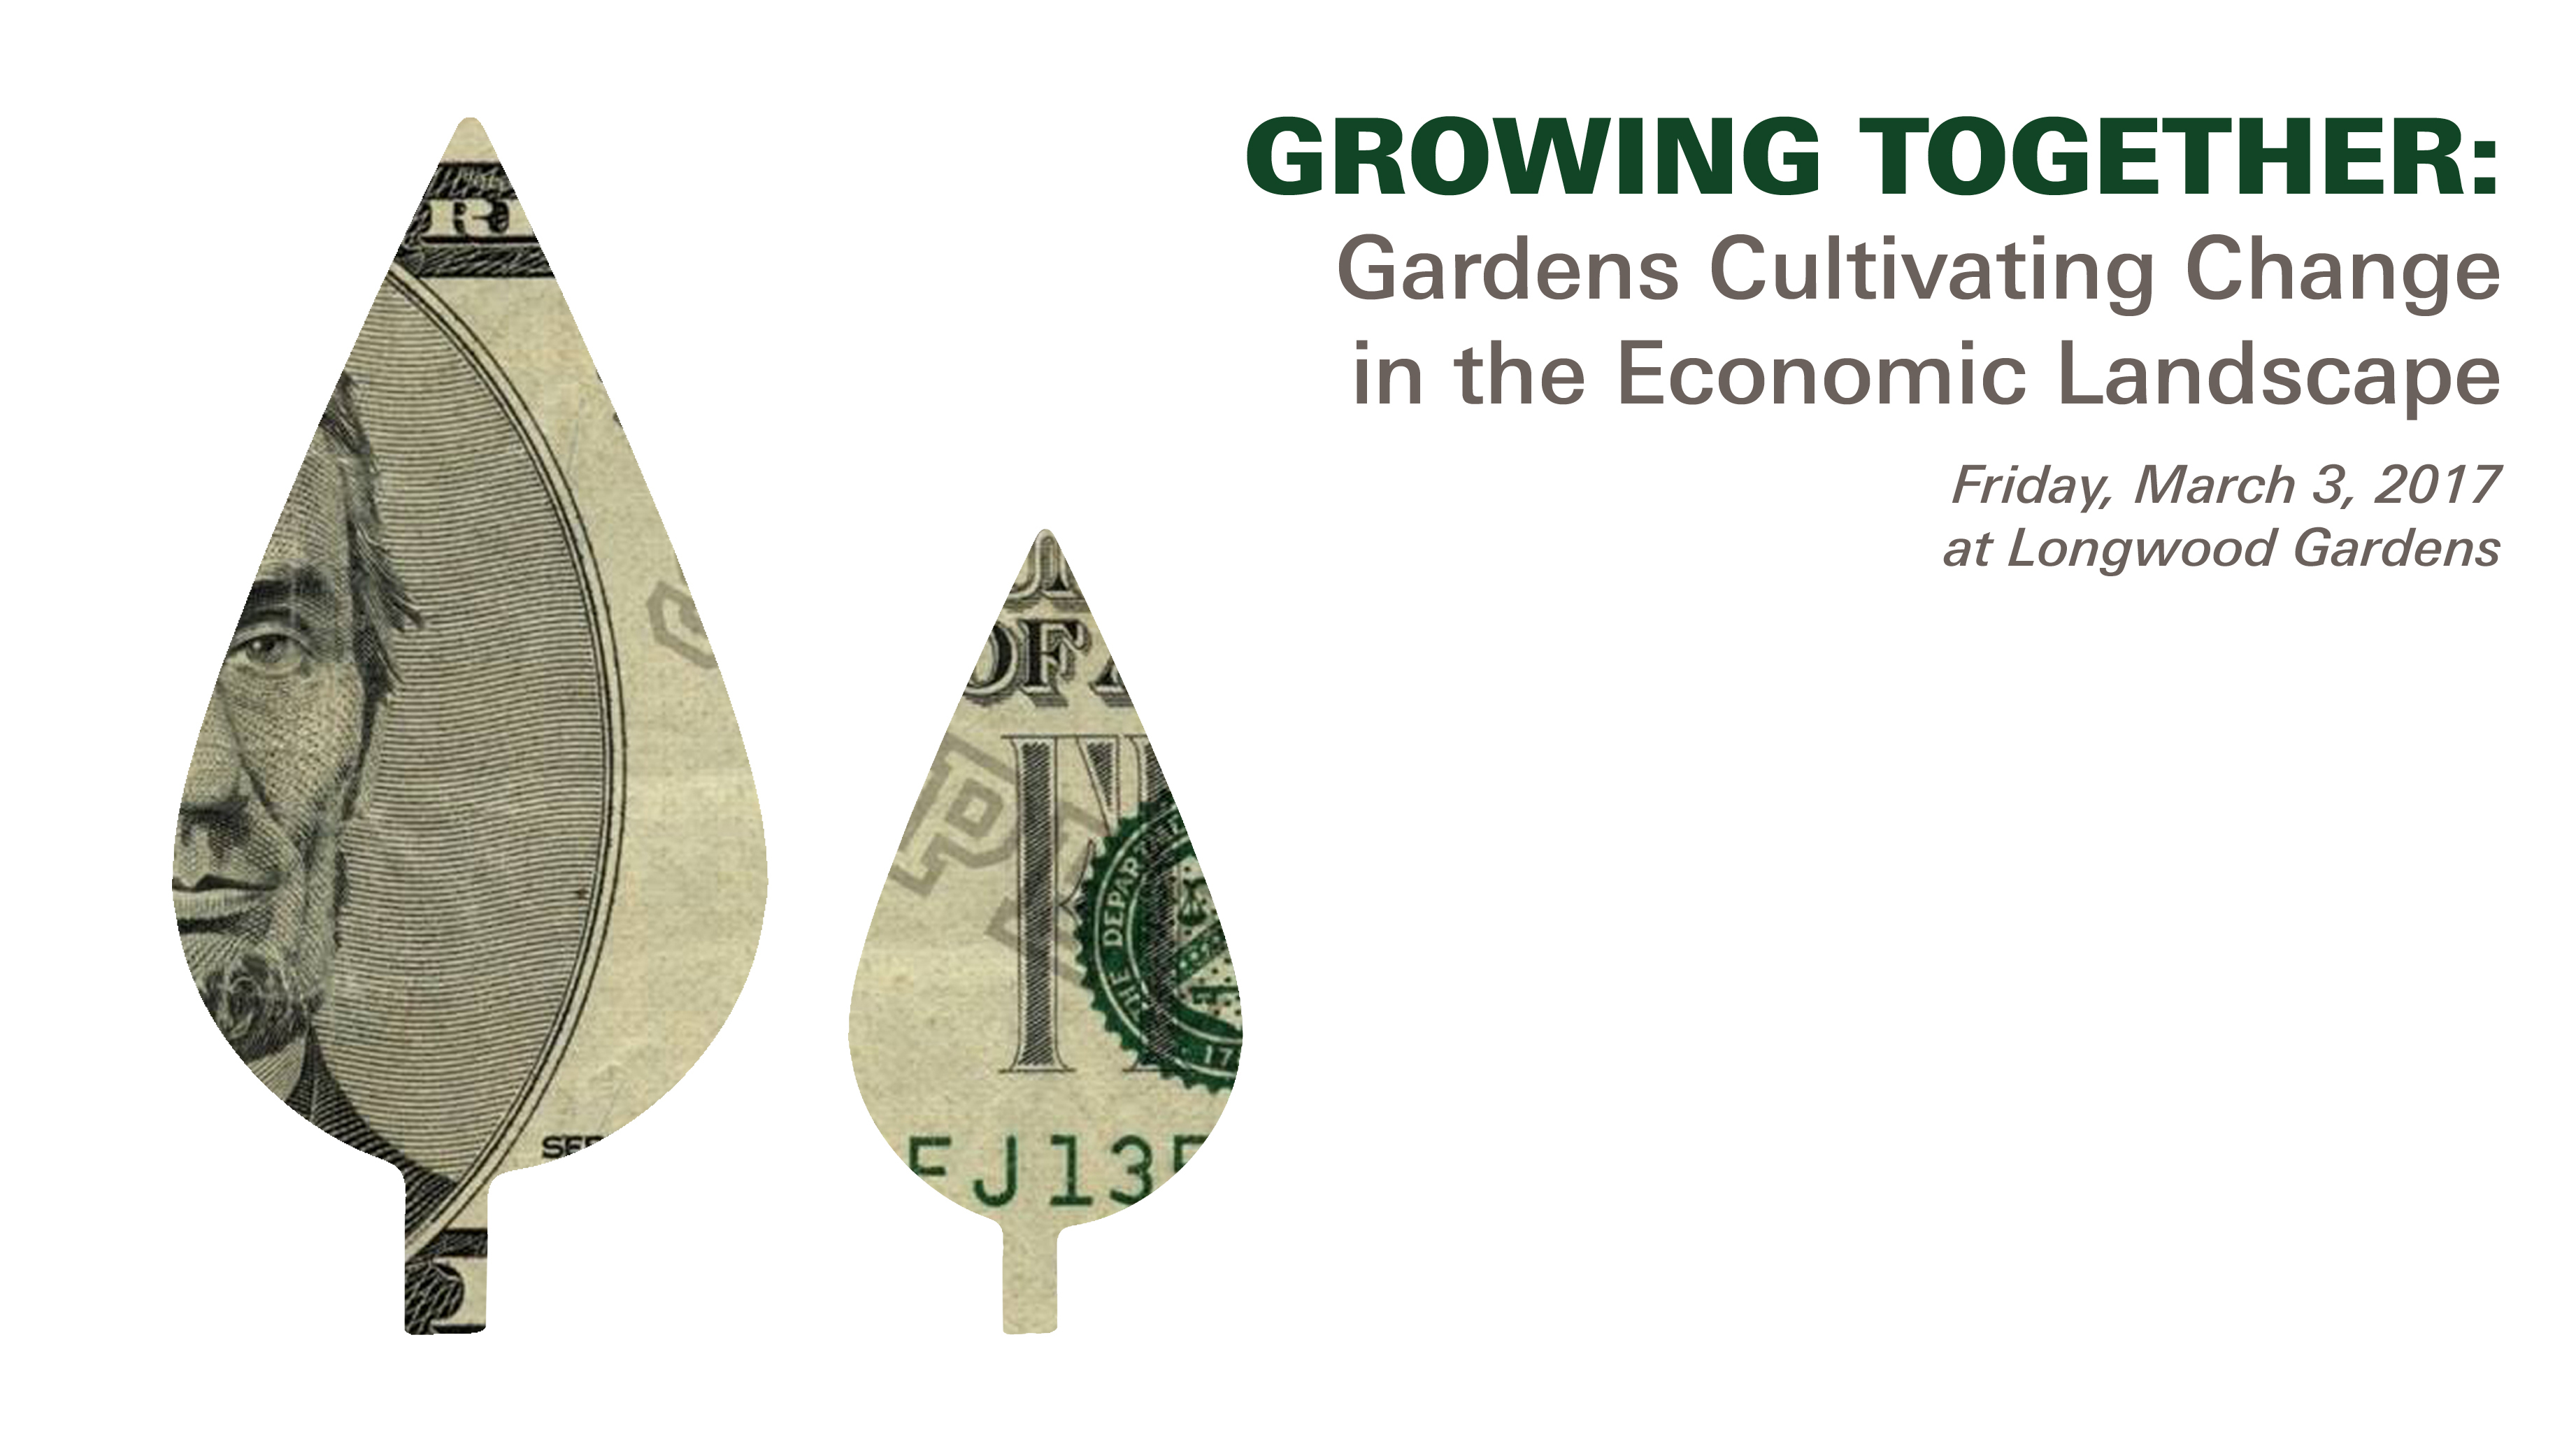 Growing Together: Cultivating Change in the Econ Landscape